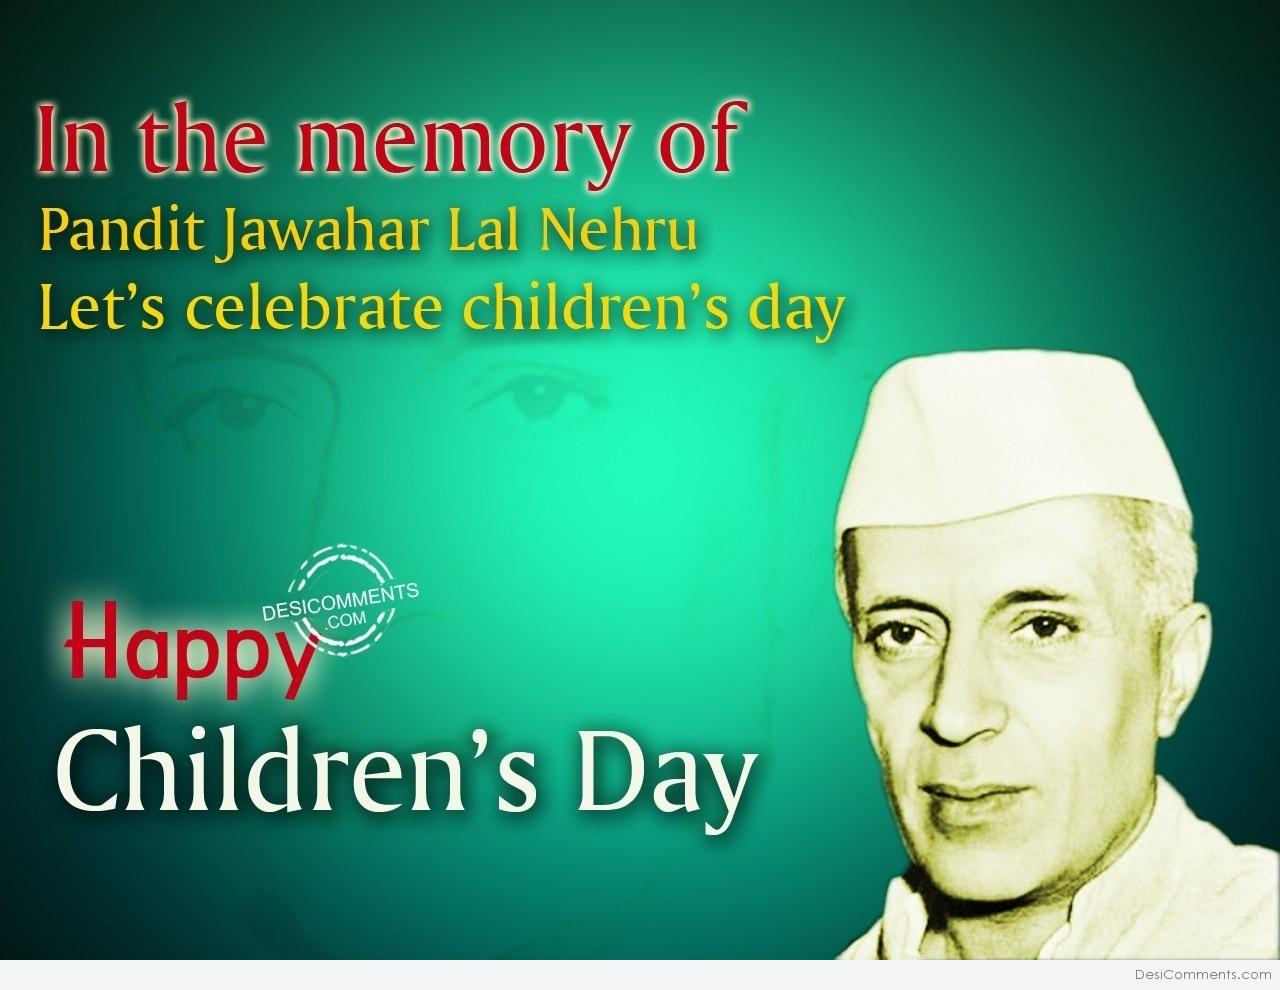 Sad Wallpapers With Quotes In Malayalam Pandit Jawaharlal Nehru Desicomments Com